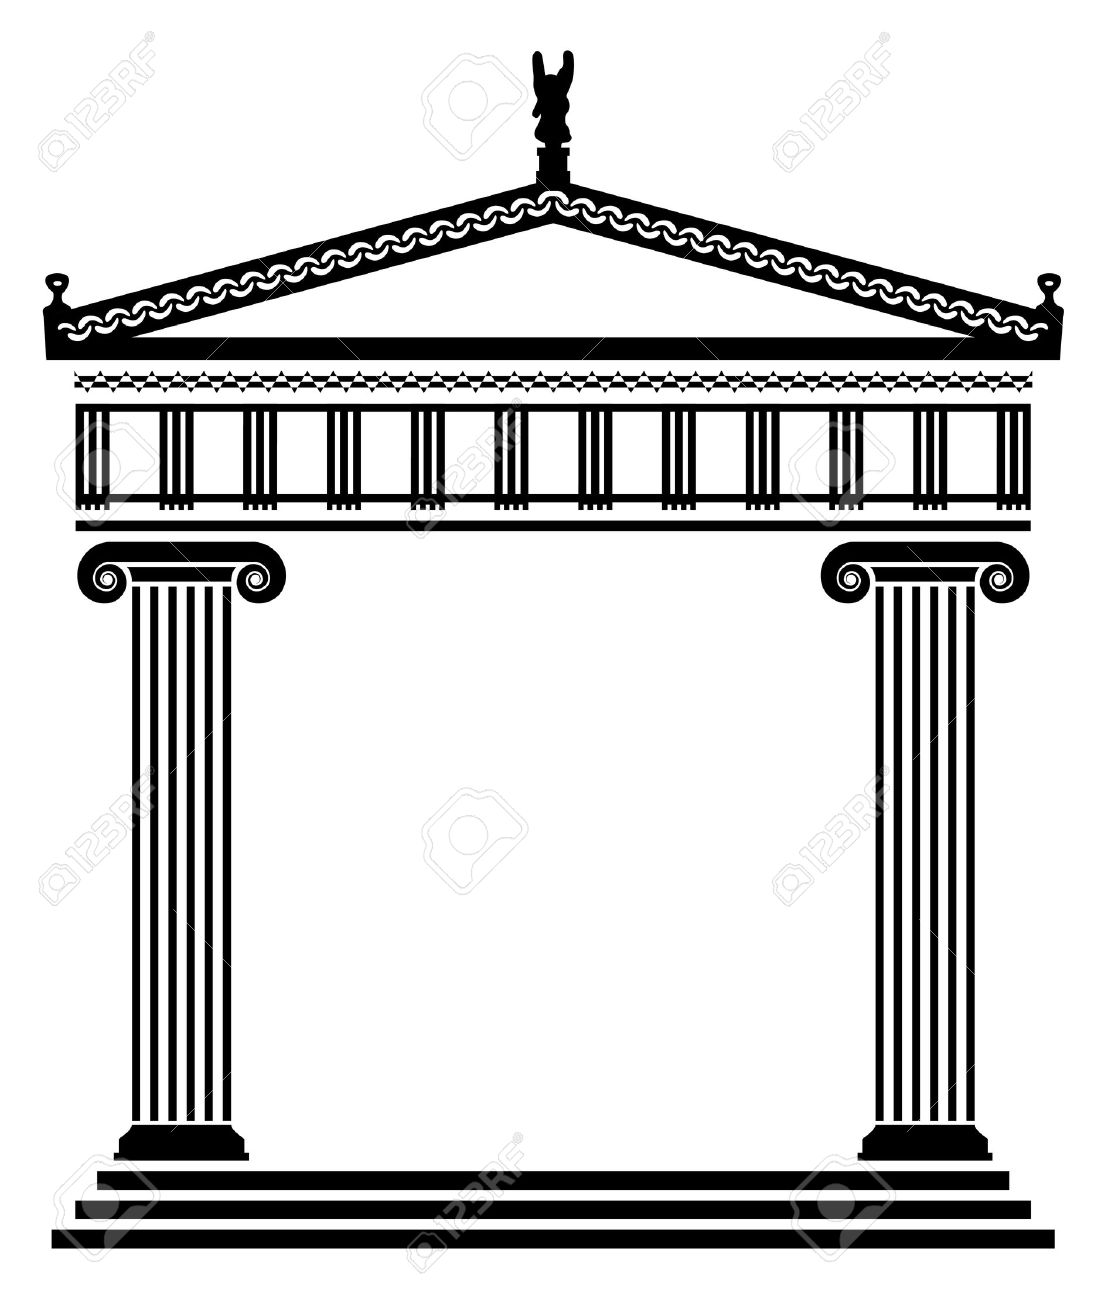 Greek Architecture Columns vector ancient greek architecture with columns royalty free